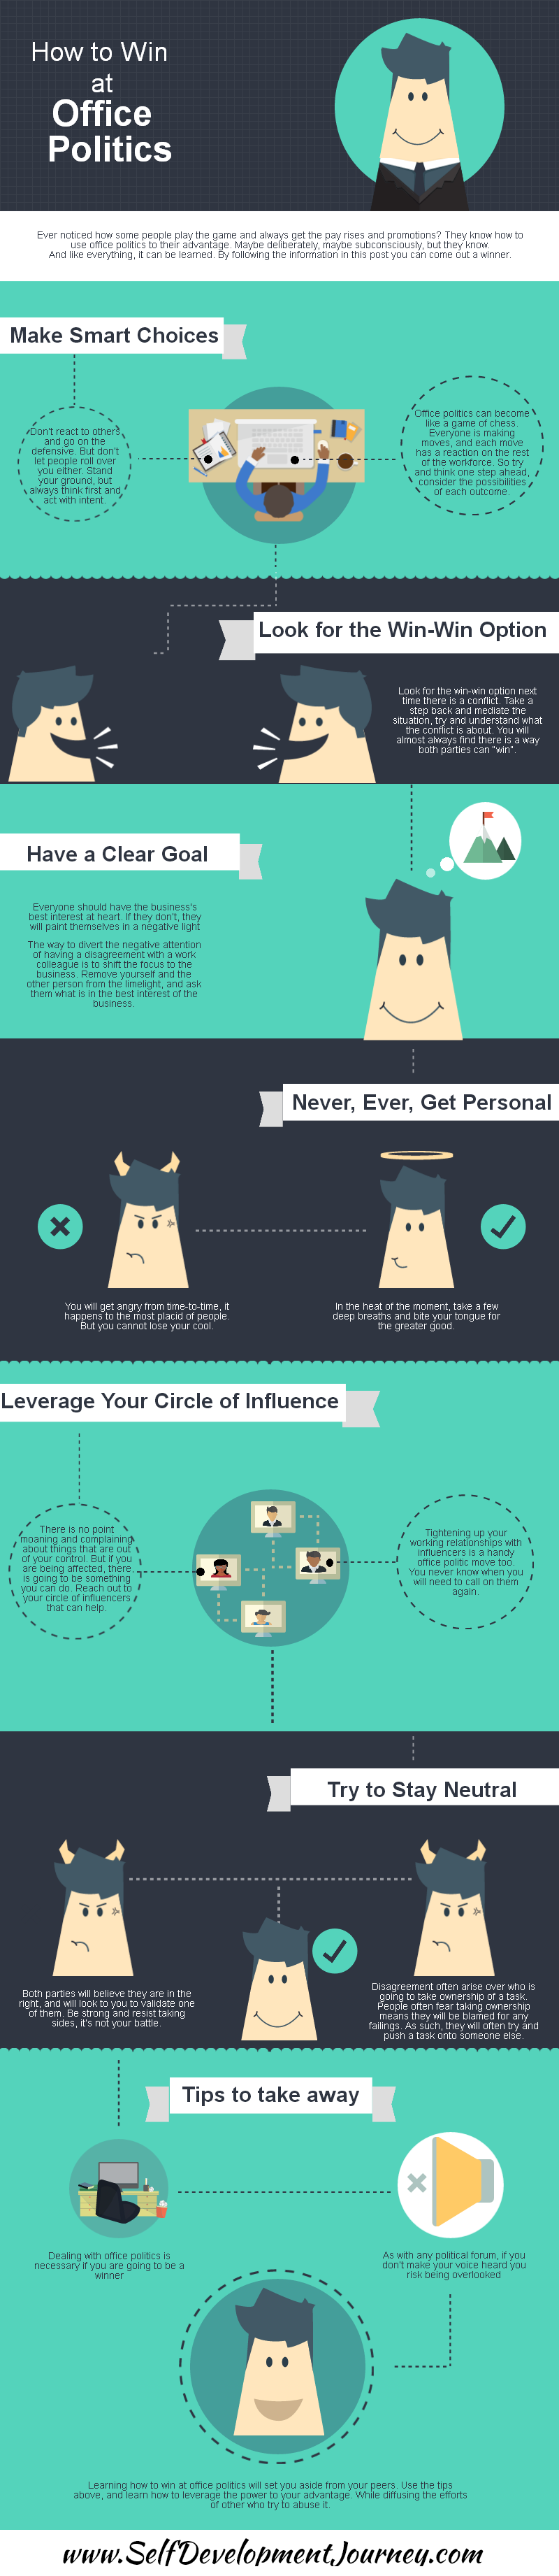 Office Politics Infographic